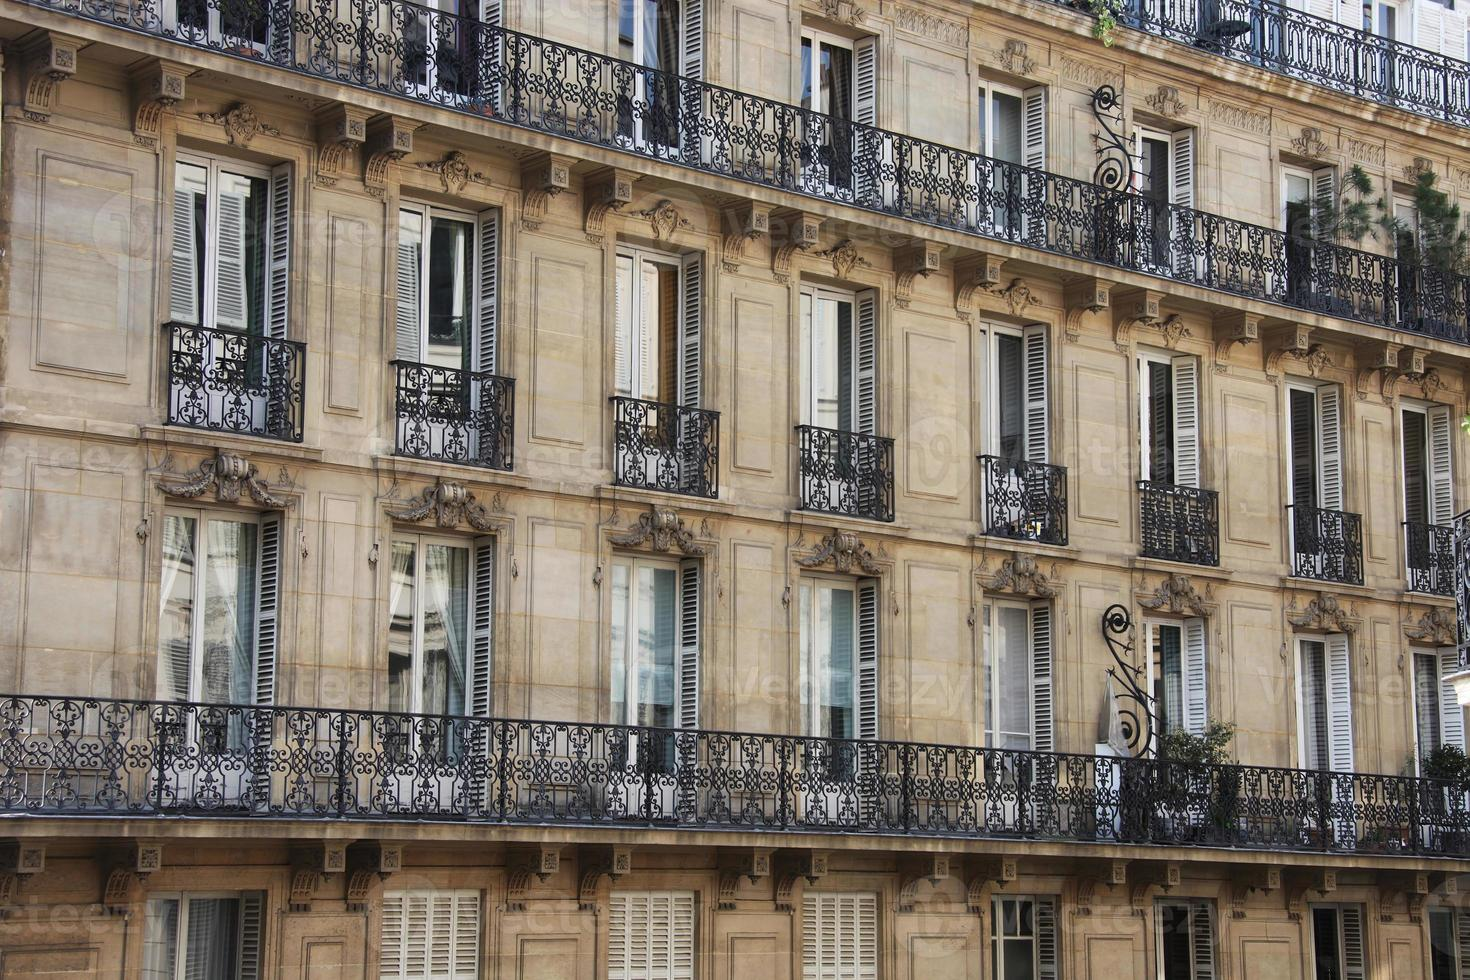 The facade, Windows and balconies of the houses photo